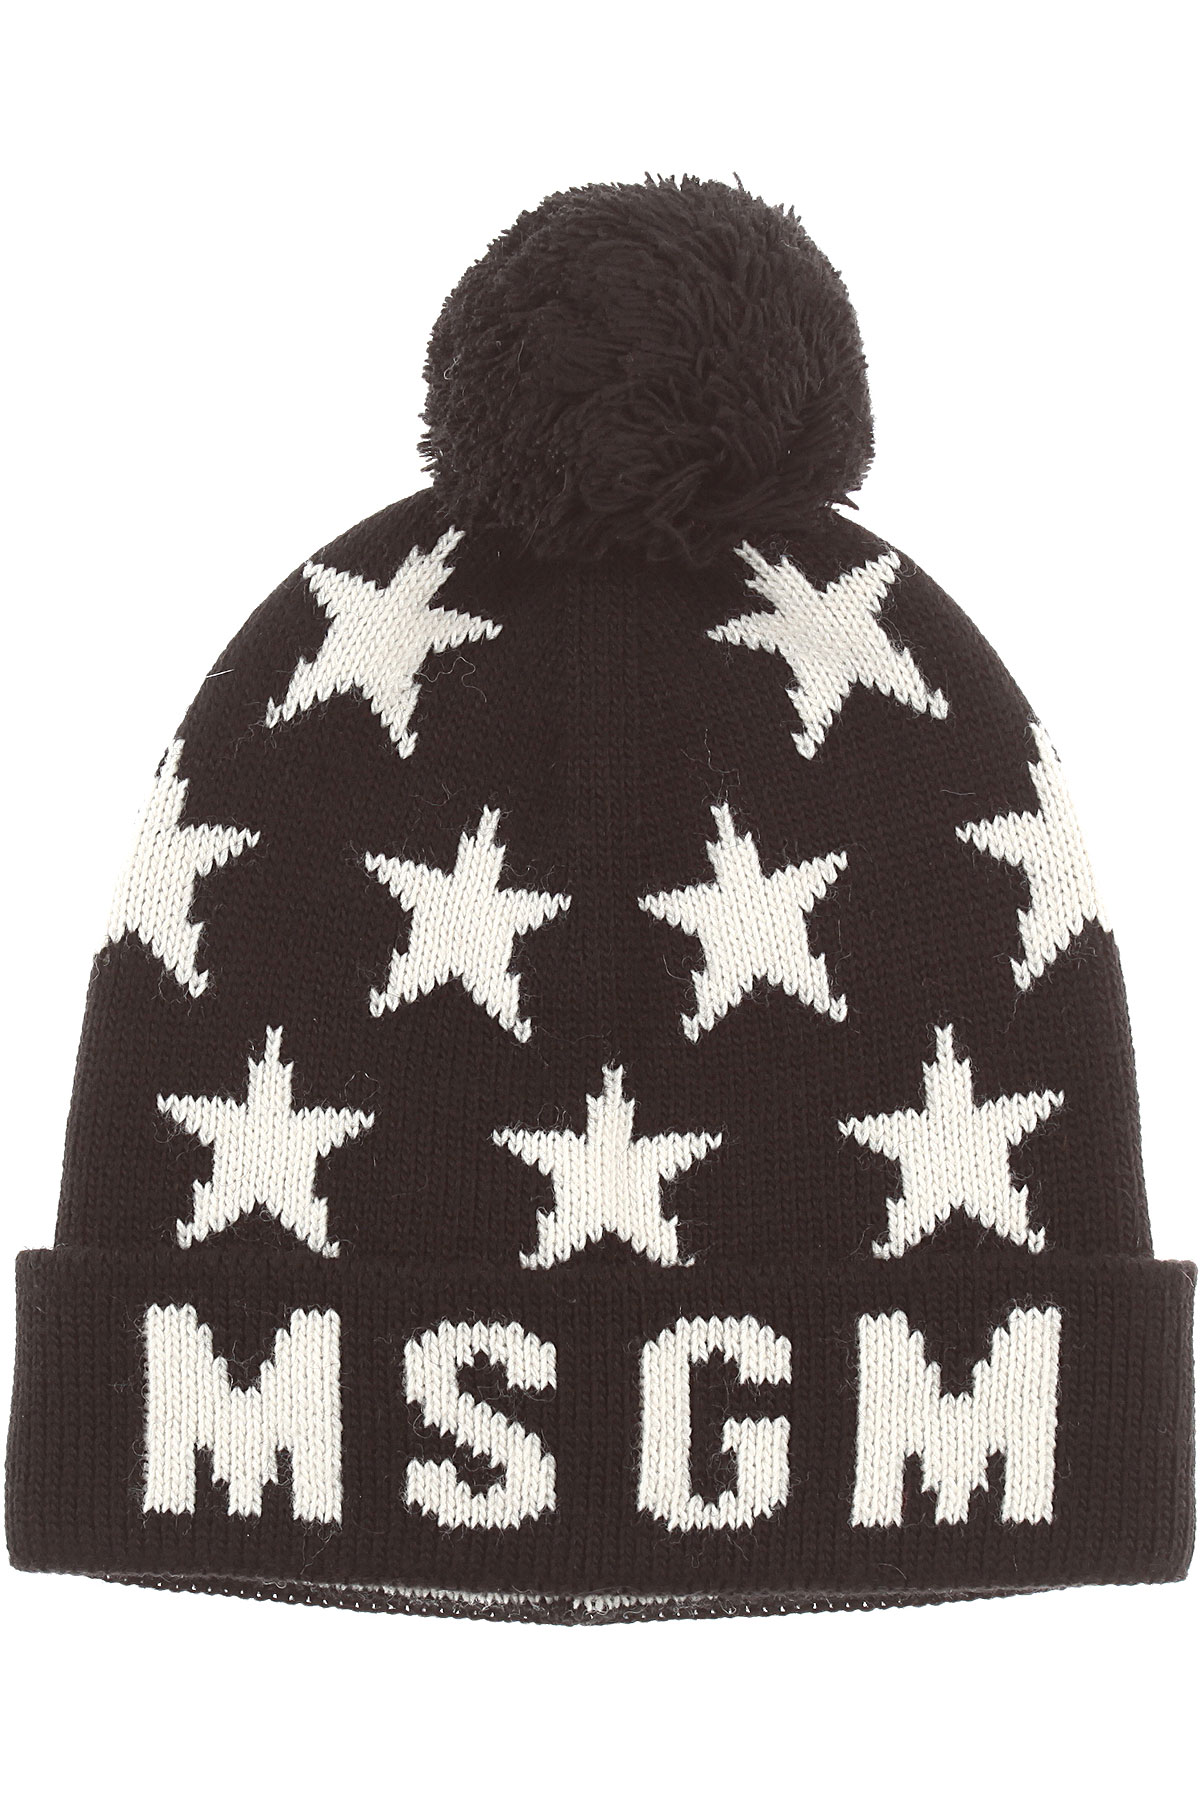 Image of MSGM Kids Hats for Girls, Black, Acrylic, 2017